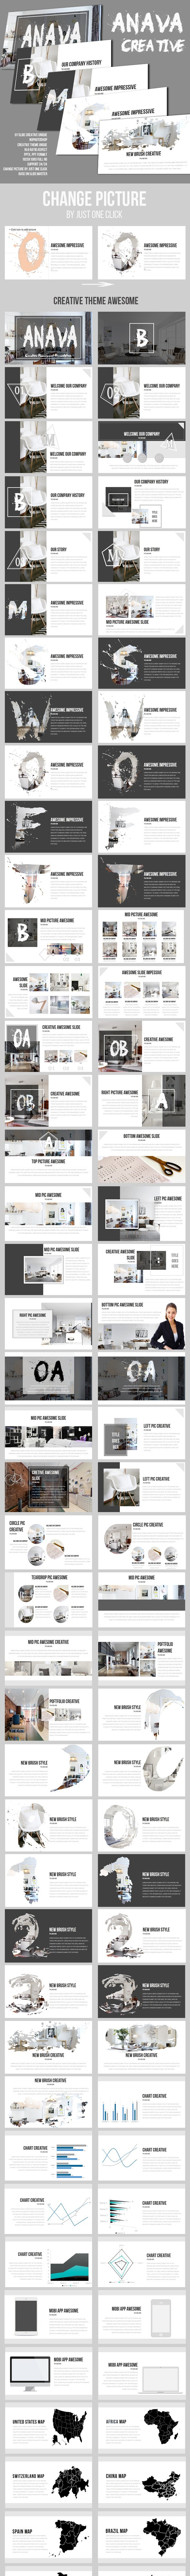 Anava Creative Powerpoint Presentation - Business PowerPoint Templates